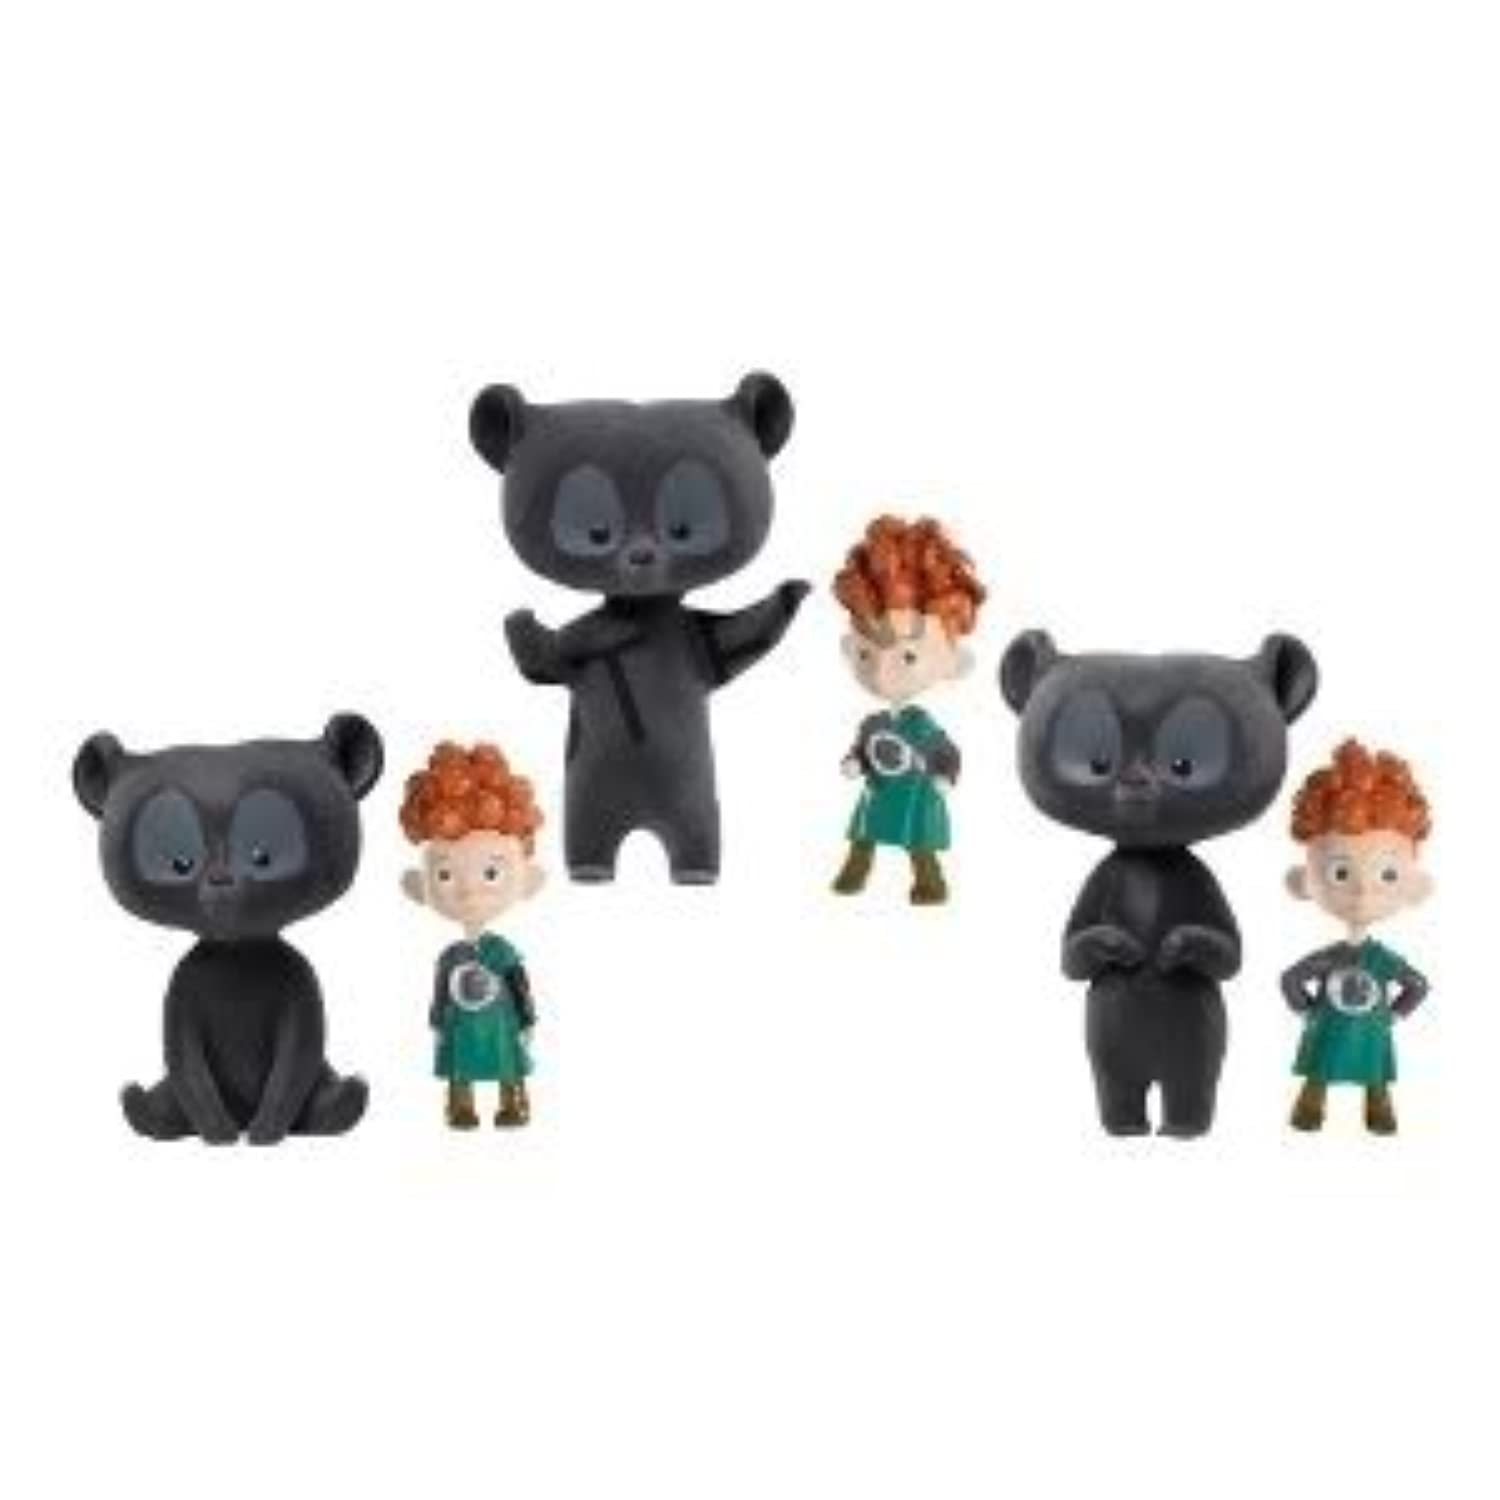 Toy / Game Adorableディズニー/ Pixar Brave Transforming Triplets Dolls – ハイライトThe Boys Playful Personalities